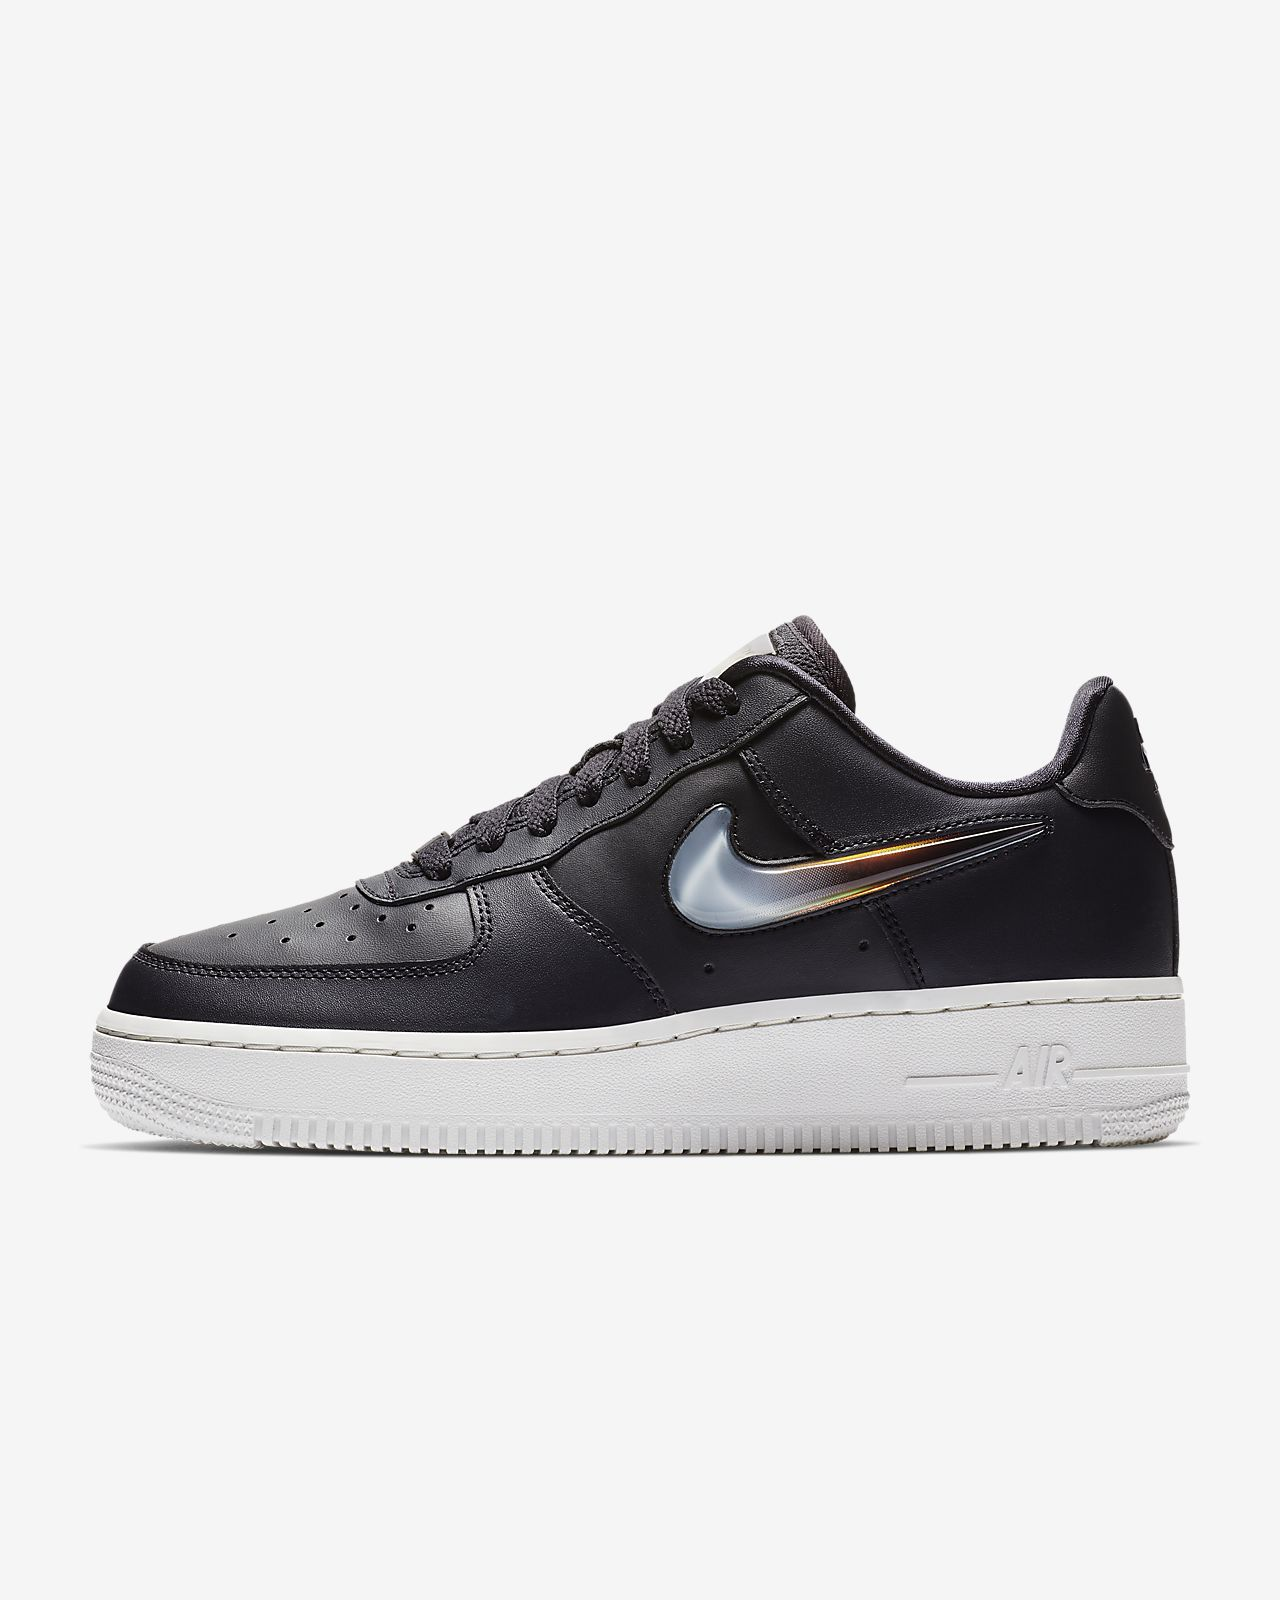 Nike Air Force 1 '07 SE Premium női cipő